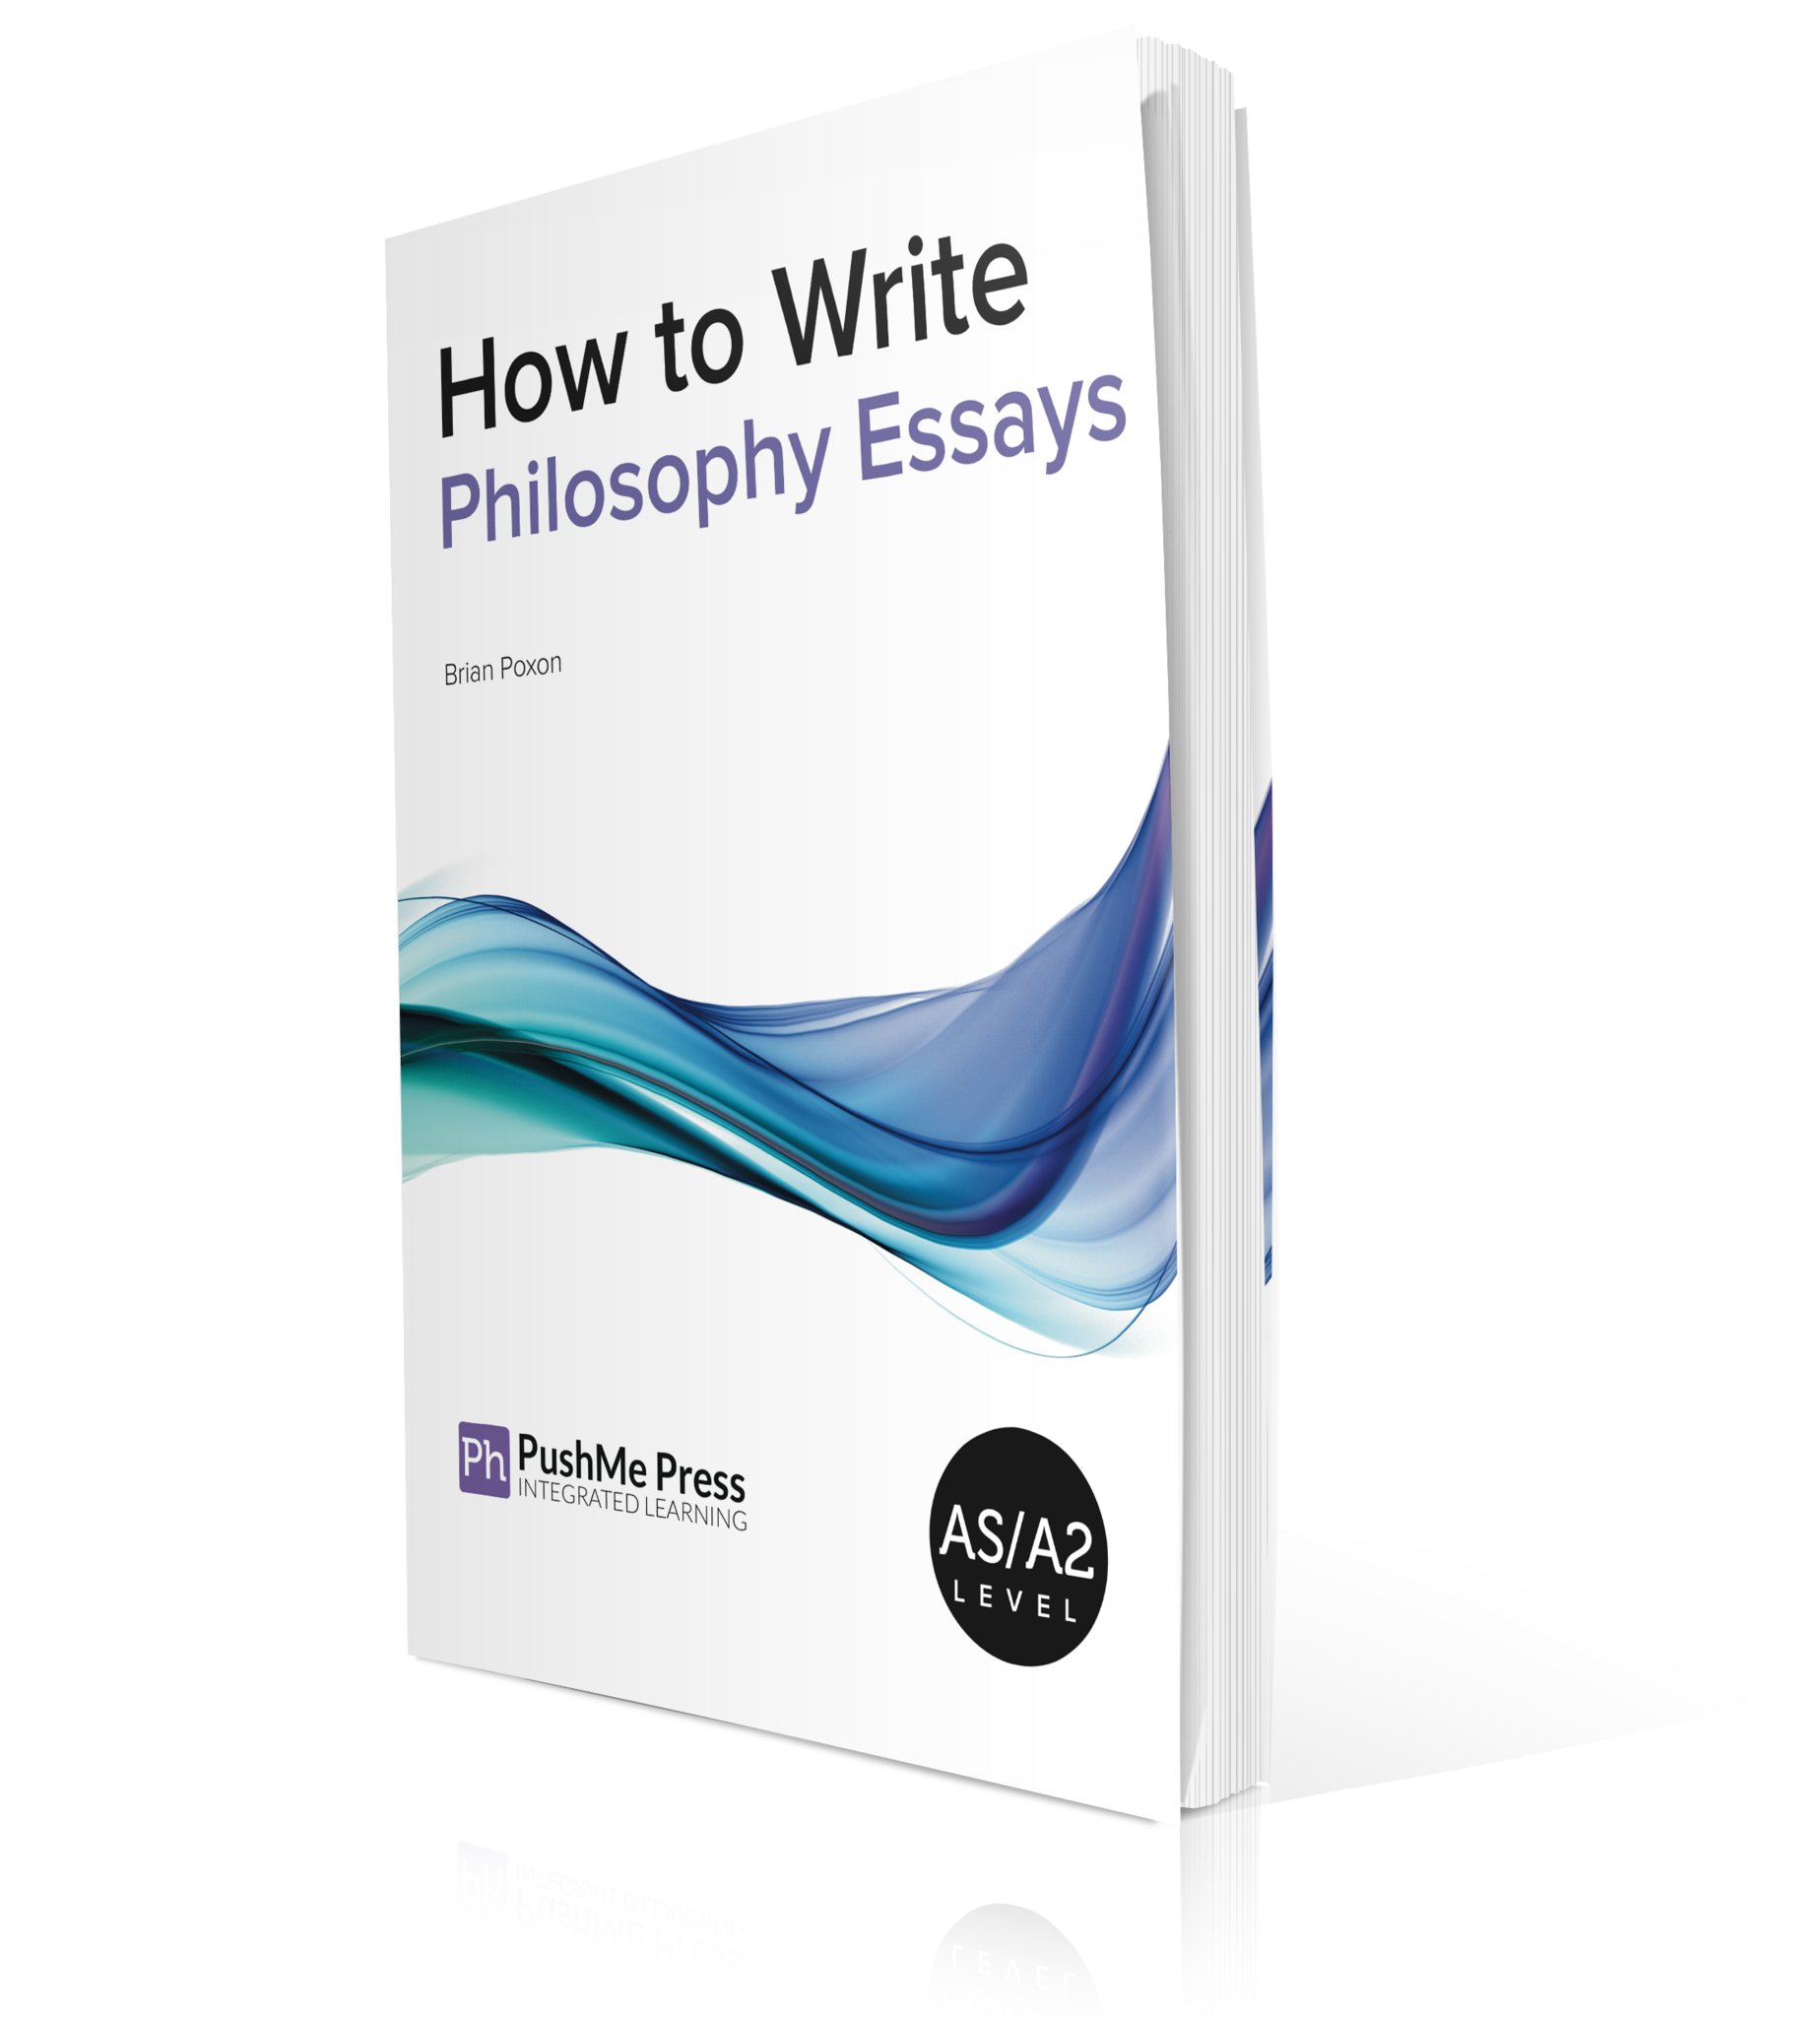 how to write philosophy essays a how to get an a grade from  how to write philosophy essays a how to get an a grade from pushme press